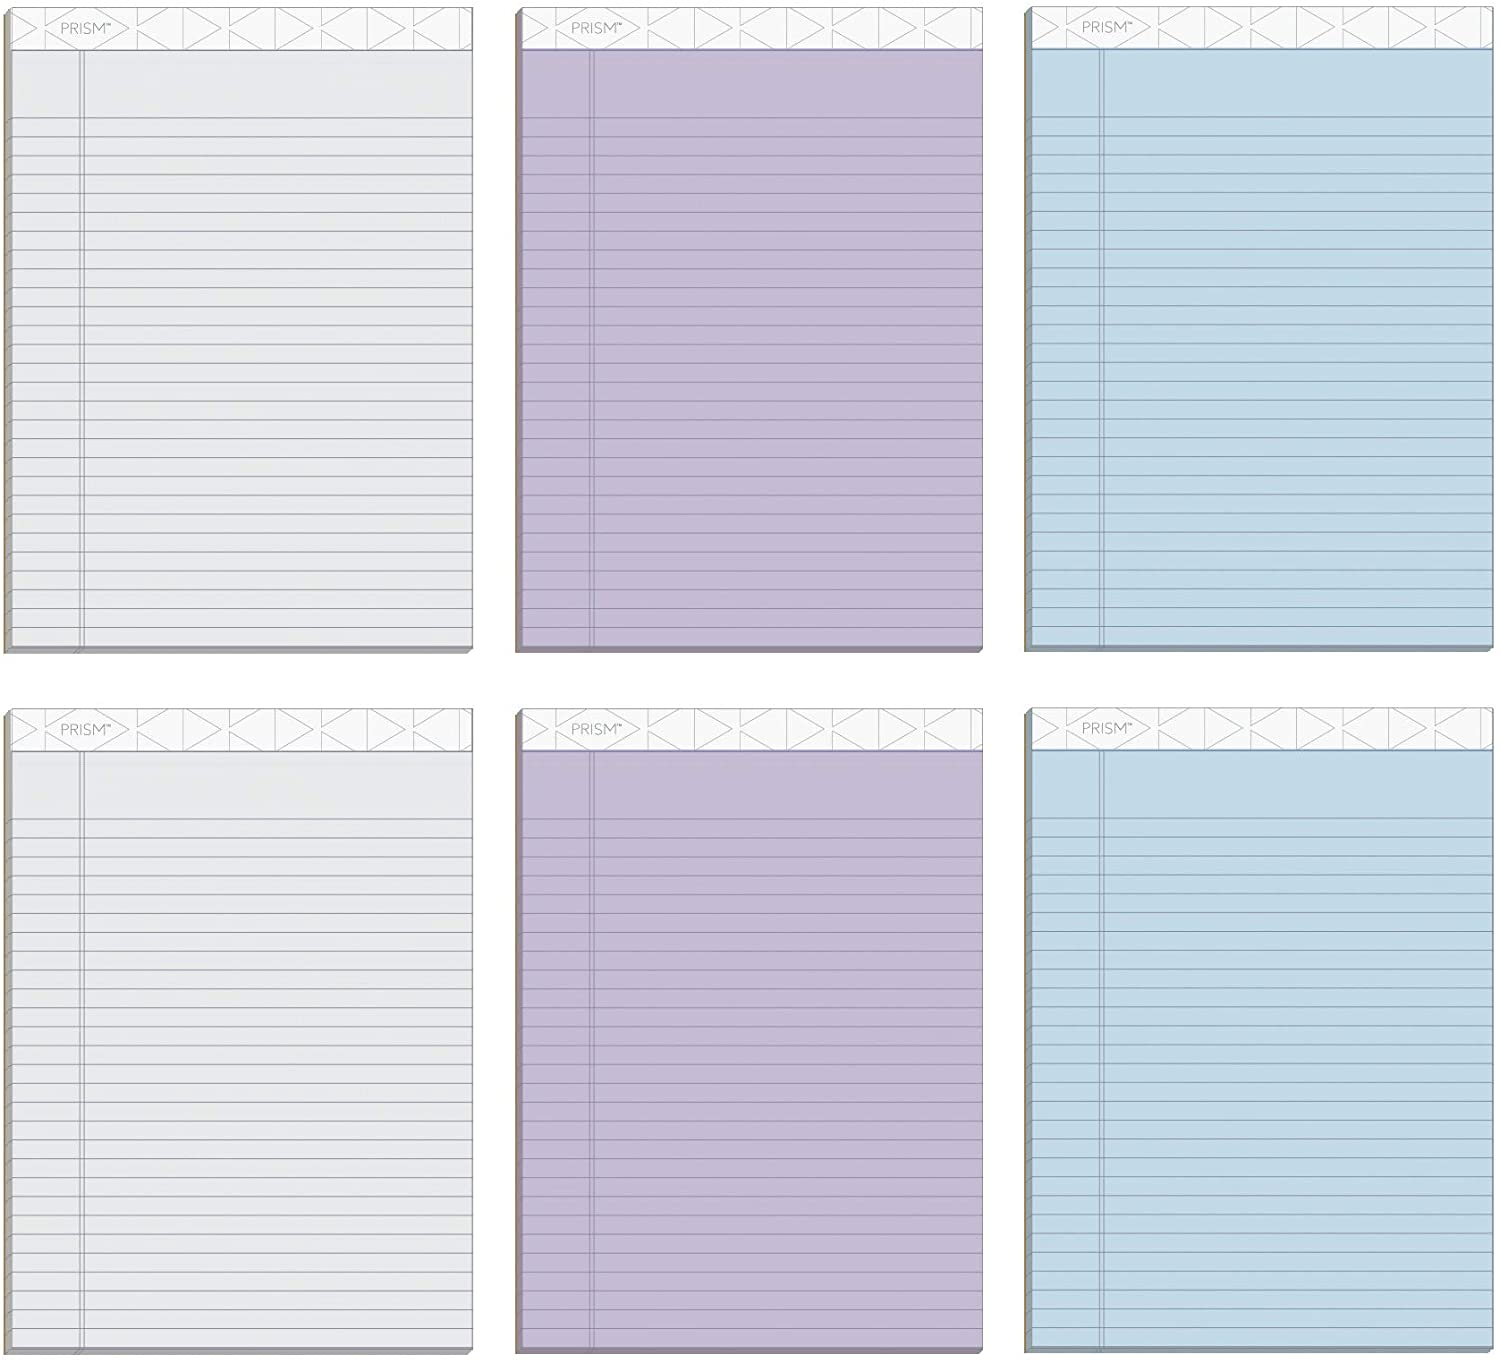 TOPS Prism+ Writing Pads, 8-1/2 x 11-3/4, Assorted Colors 2 Each: Gray, Orchid, Blue, Legal Rule, 50 Sheets, Perforated Pages, 6 Pack (63116)